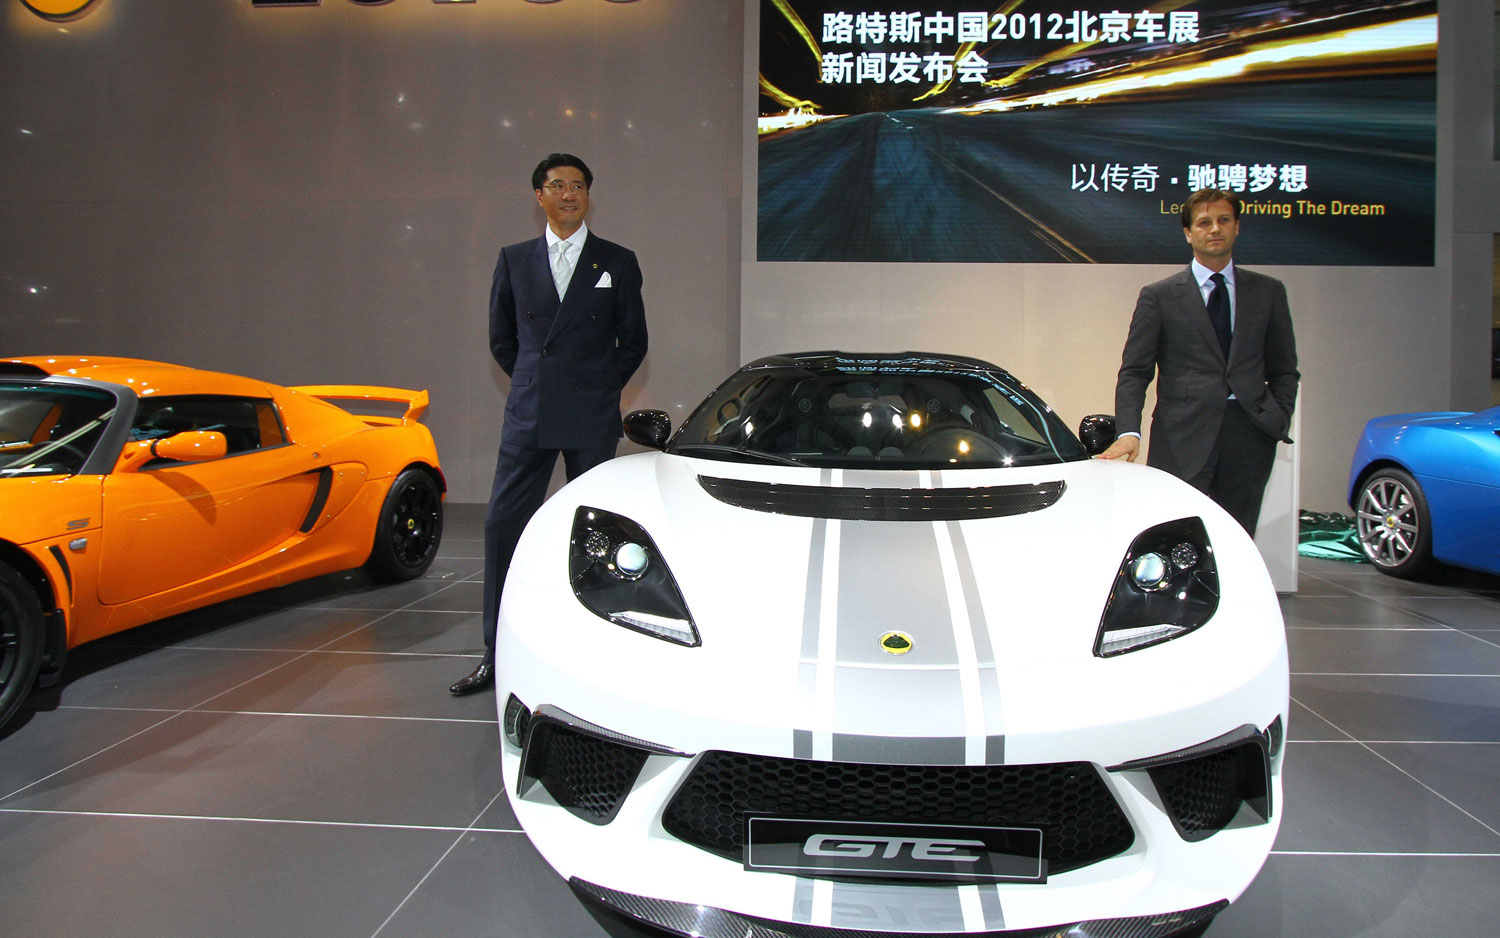 https://enthusiastnetwork.s3.amazonaws.com/uploads/sites/5/2012/04/Lotus-Evora-GTE-China-Limited-Edition-front-view.jpg?impolicy=entryimage